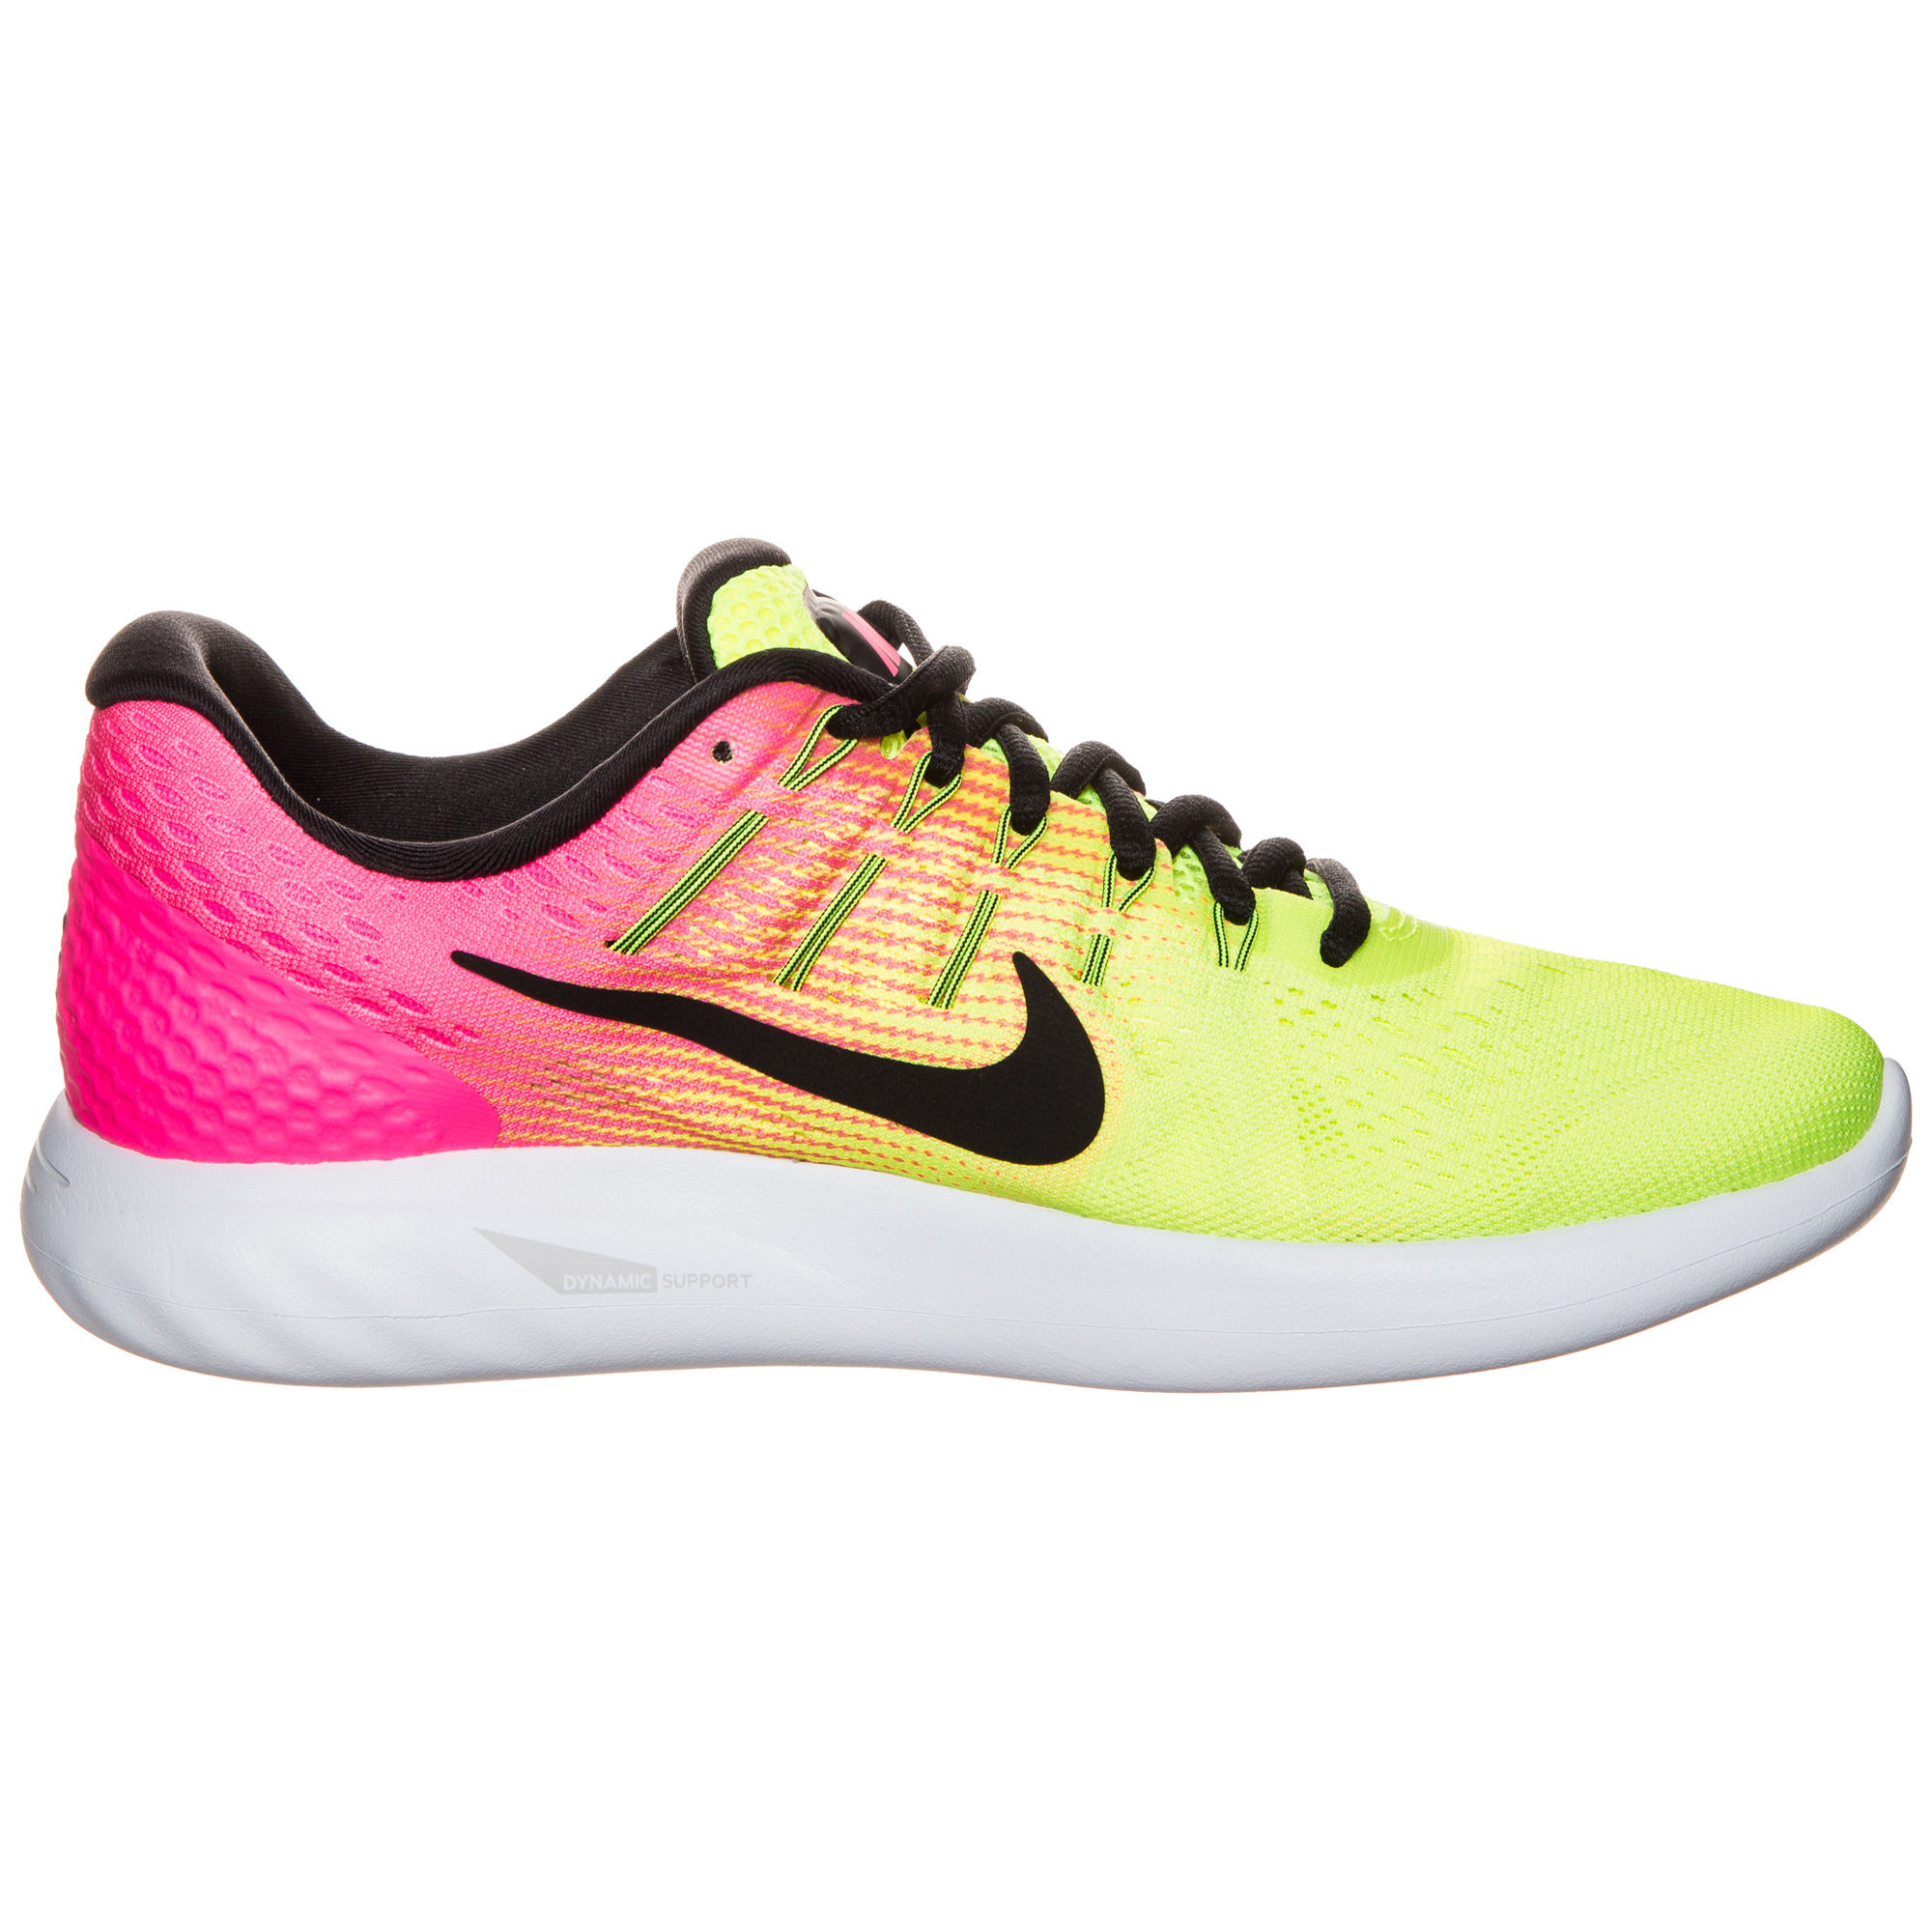 Nike Lady LunarGlide 8 Olympic in Gelb Pink